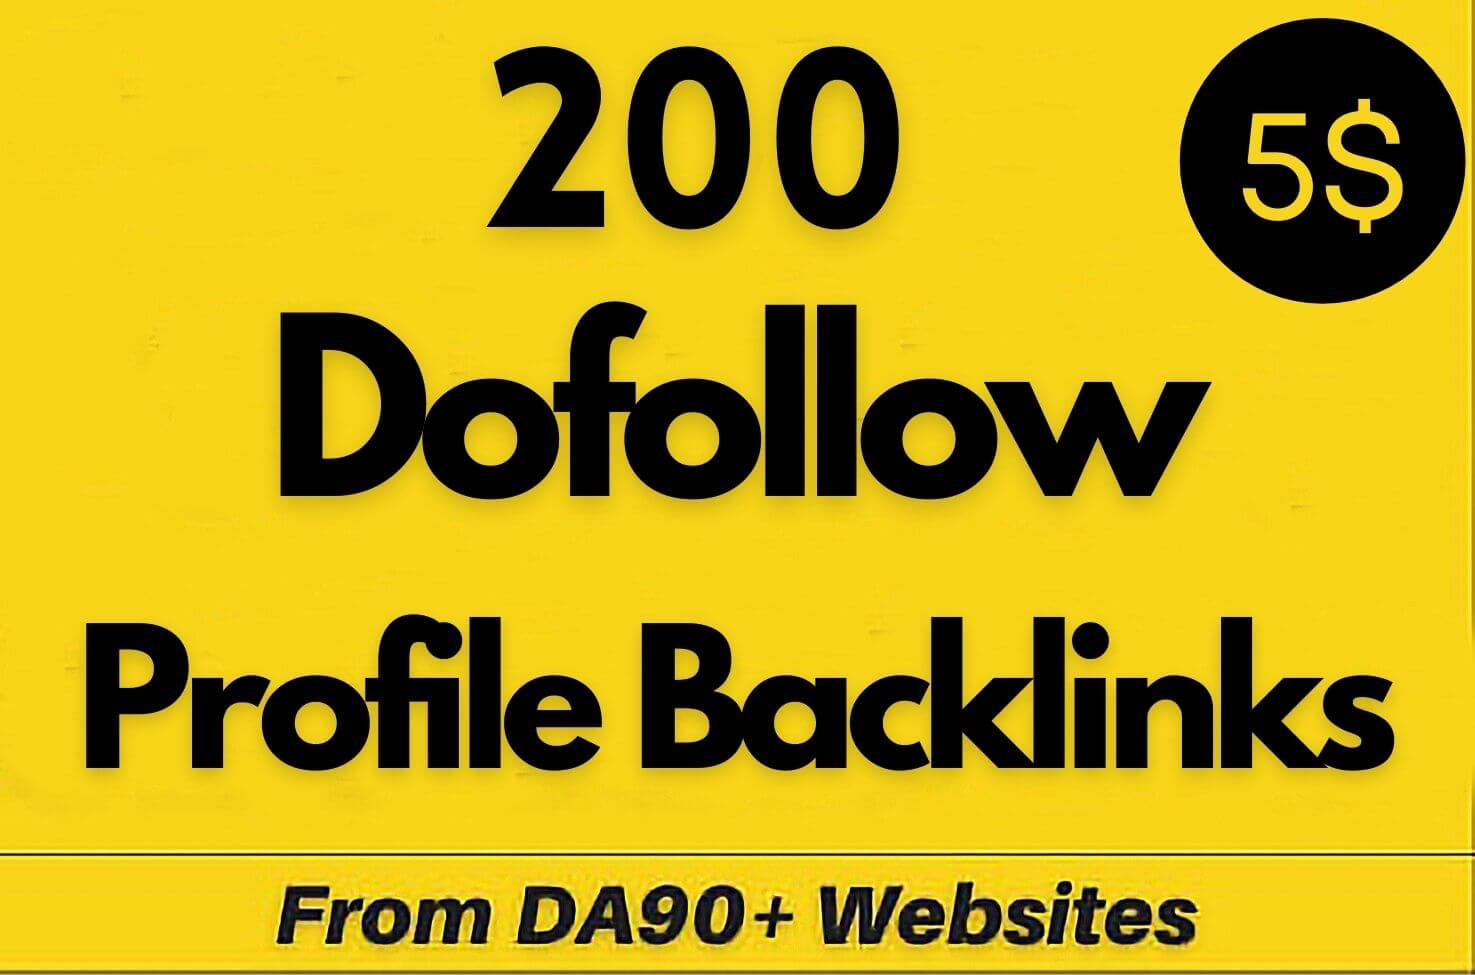 Manually 200 Backlinks Create DA 90 SEO Profile Backlinks,  link building,  Profile Backlink Creation